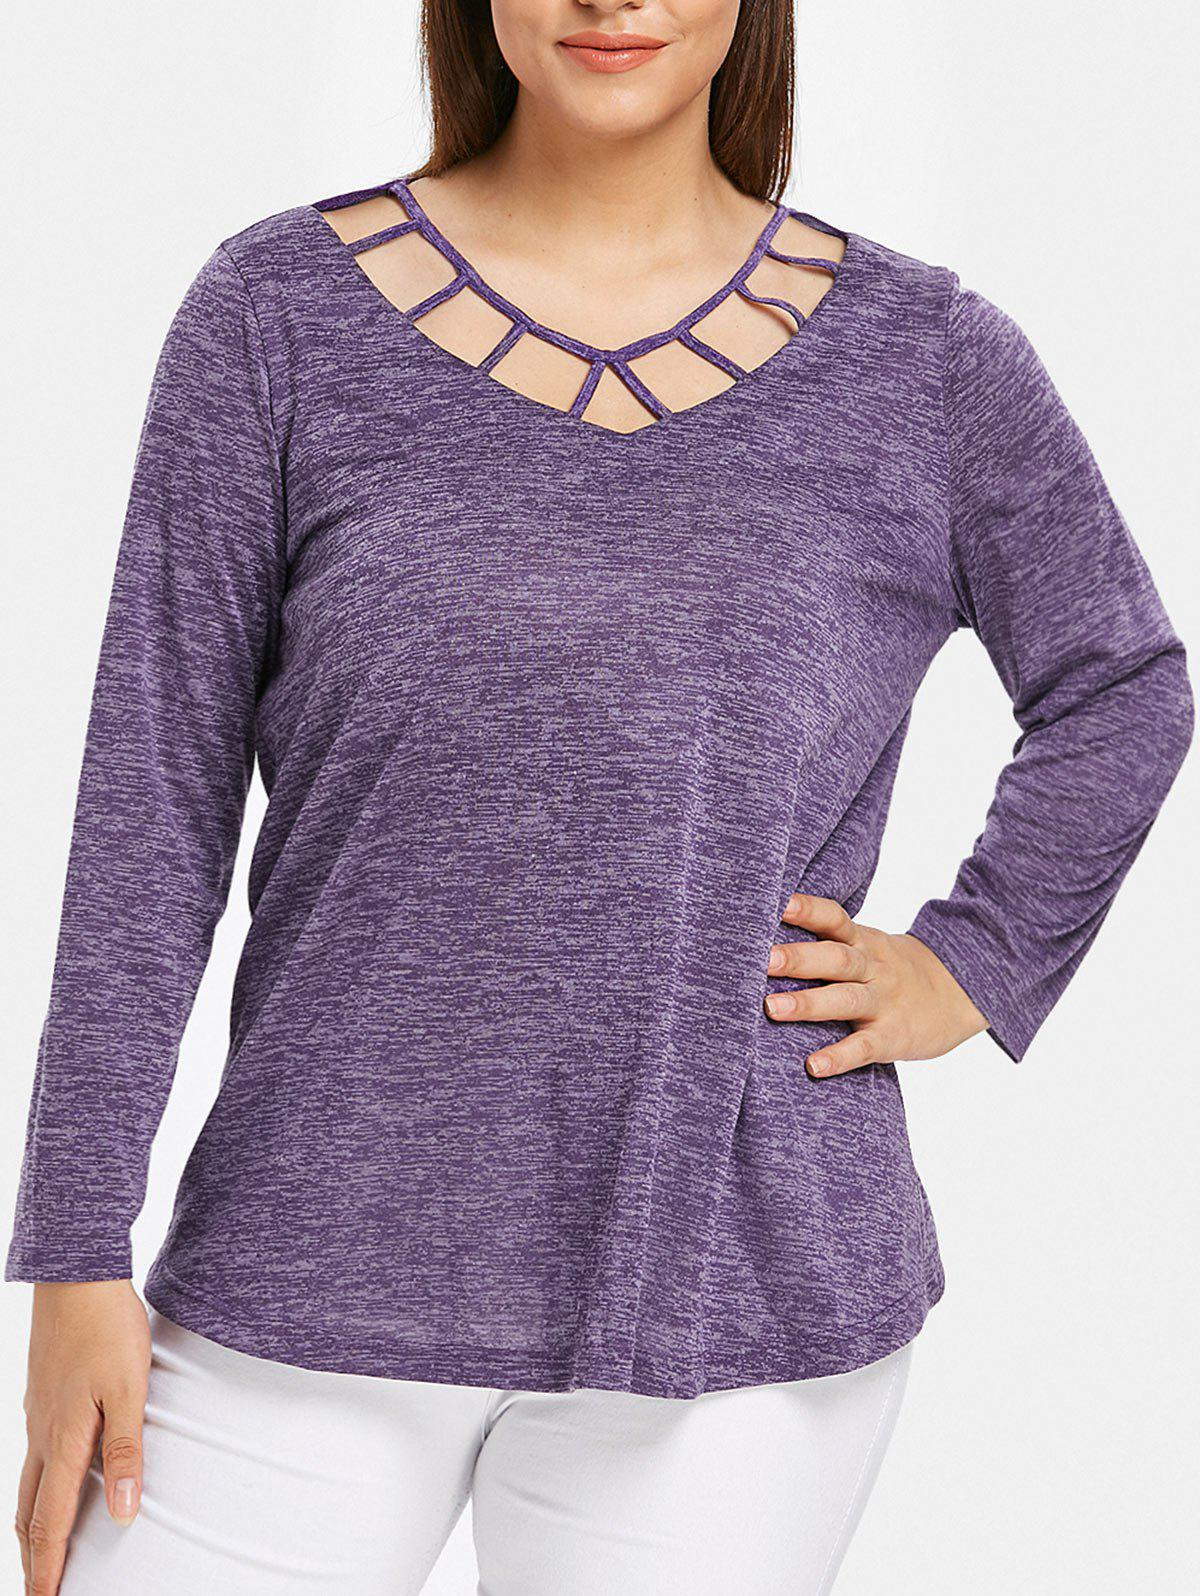 Space Dye Cutout Plus Size T-shirt - PURPLE IRIS L